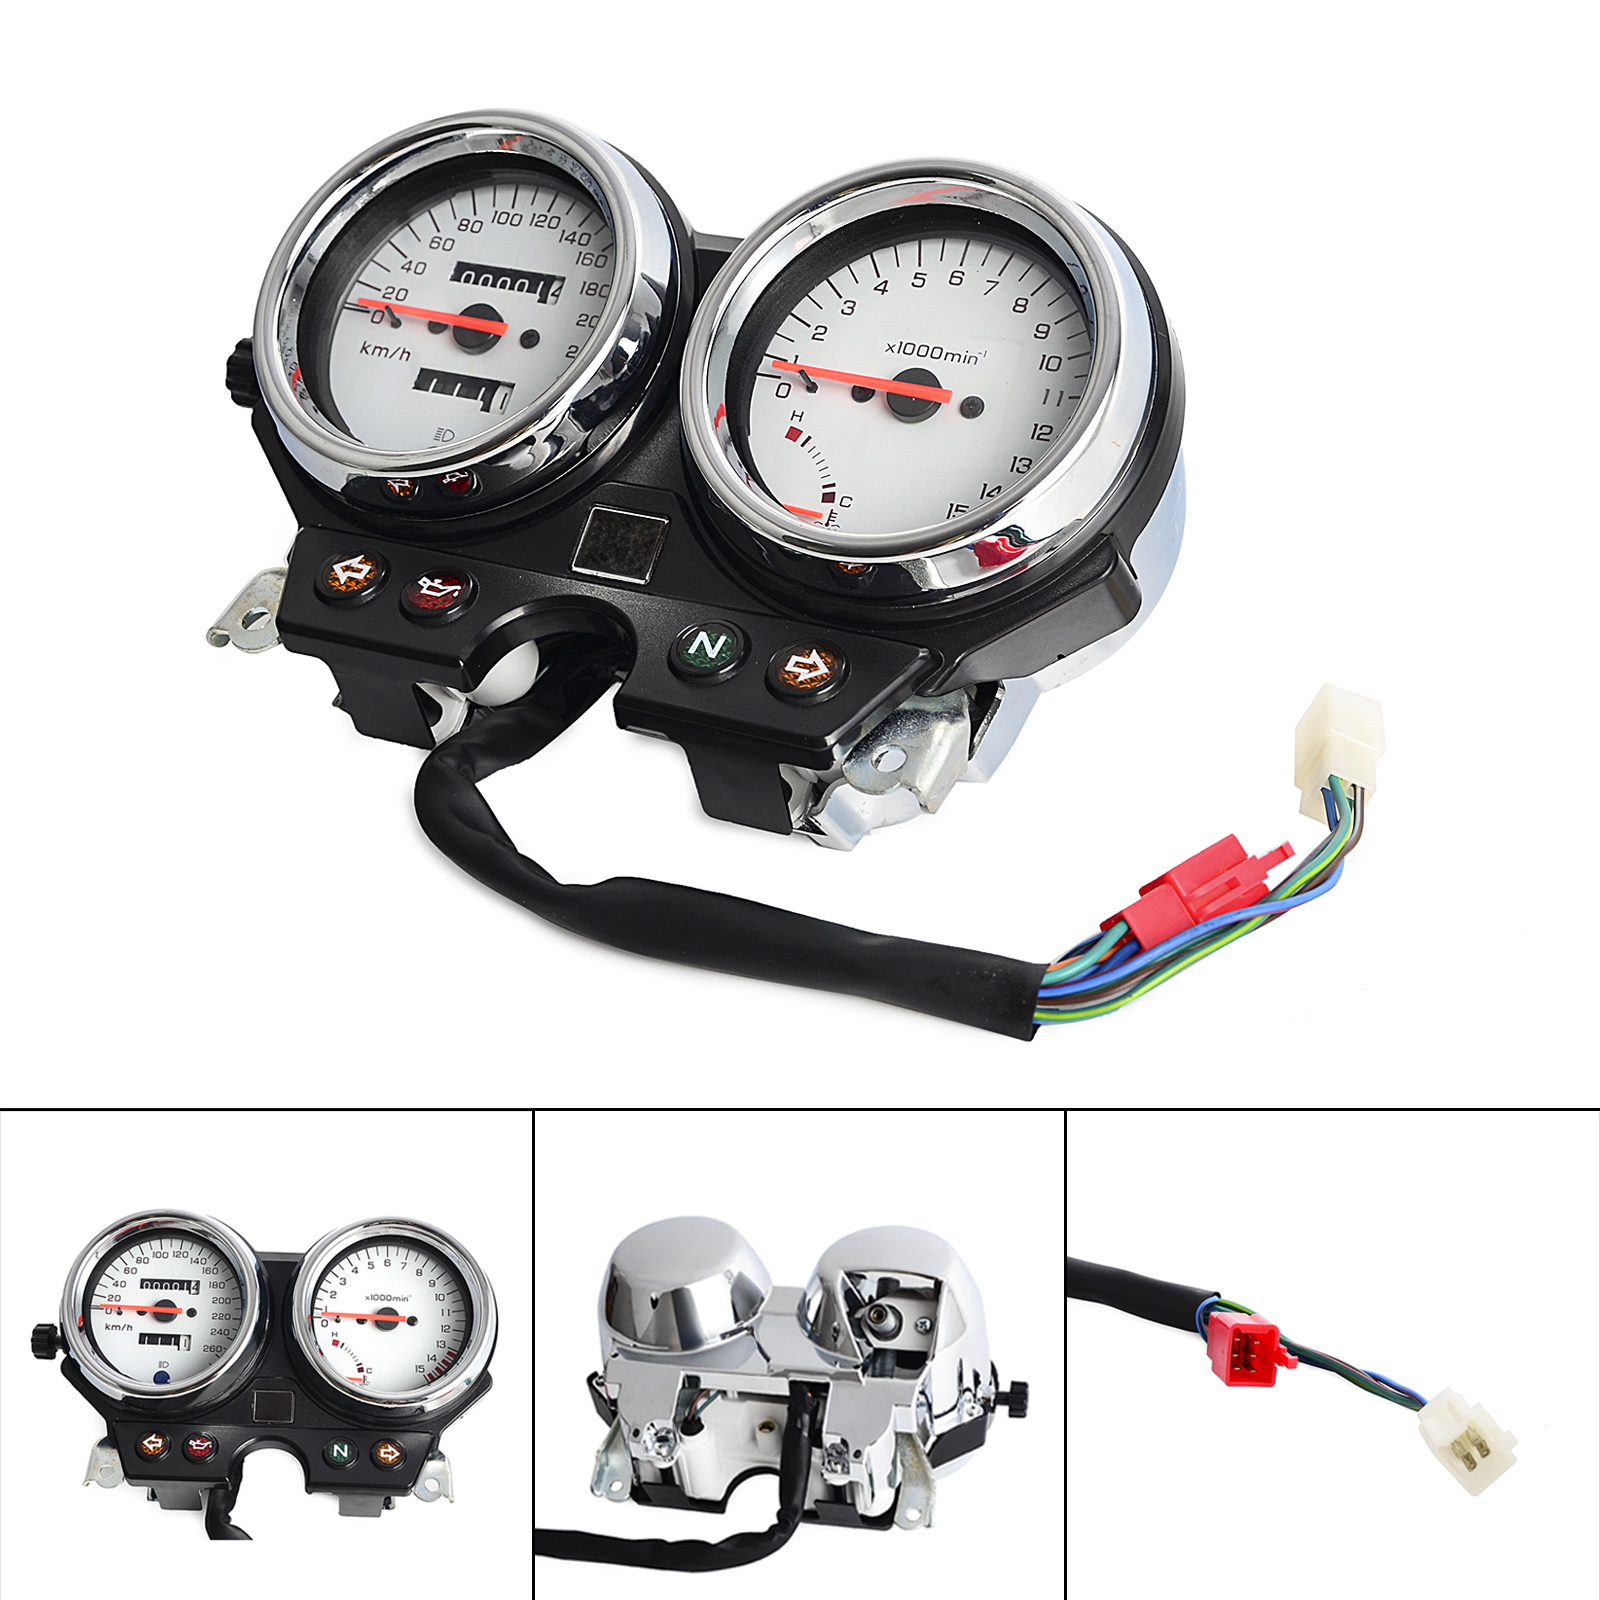 Motorcycle Gauge Cluster Speedometer For <font><b>Honda</b></font> CB600 <font><b>Hornet</b></font> <font><b>600</b></font> 1996 1997 1998 1999 2000 <font><b>2001</b></font> 2002 Hornet600 NEW image